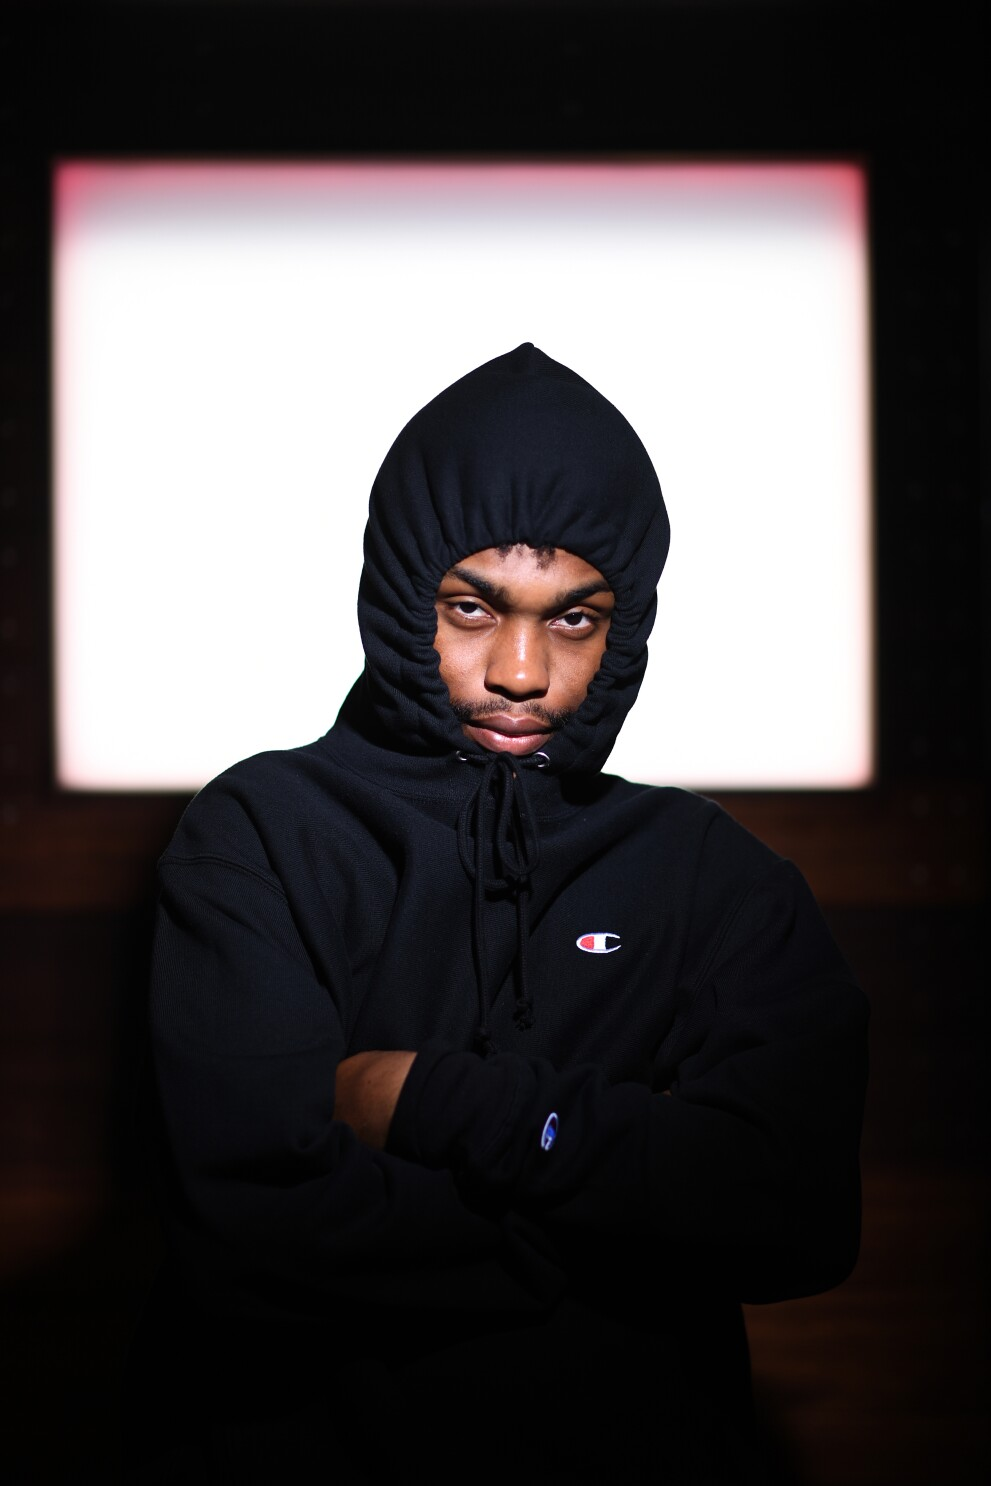 Rapper $not has Billie Eilish and 'Euphoria' so-signs